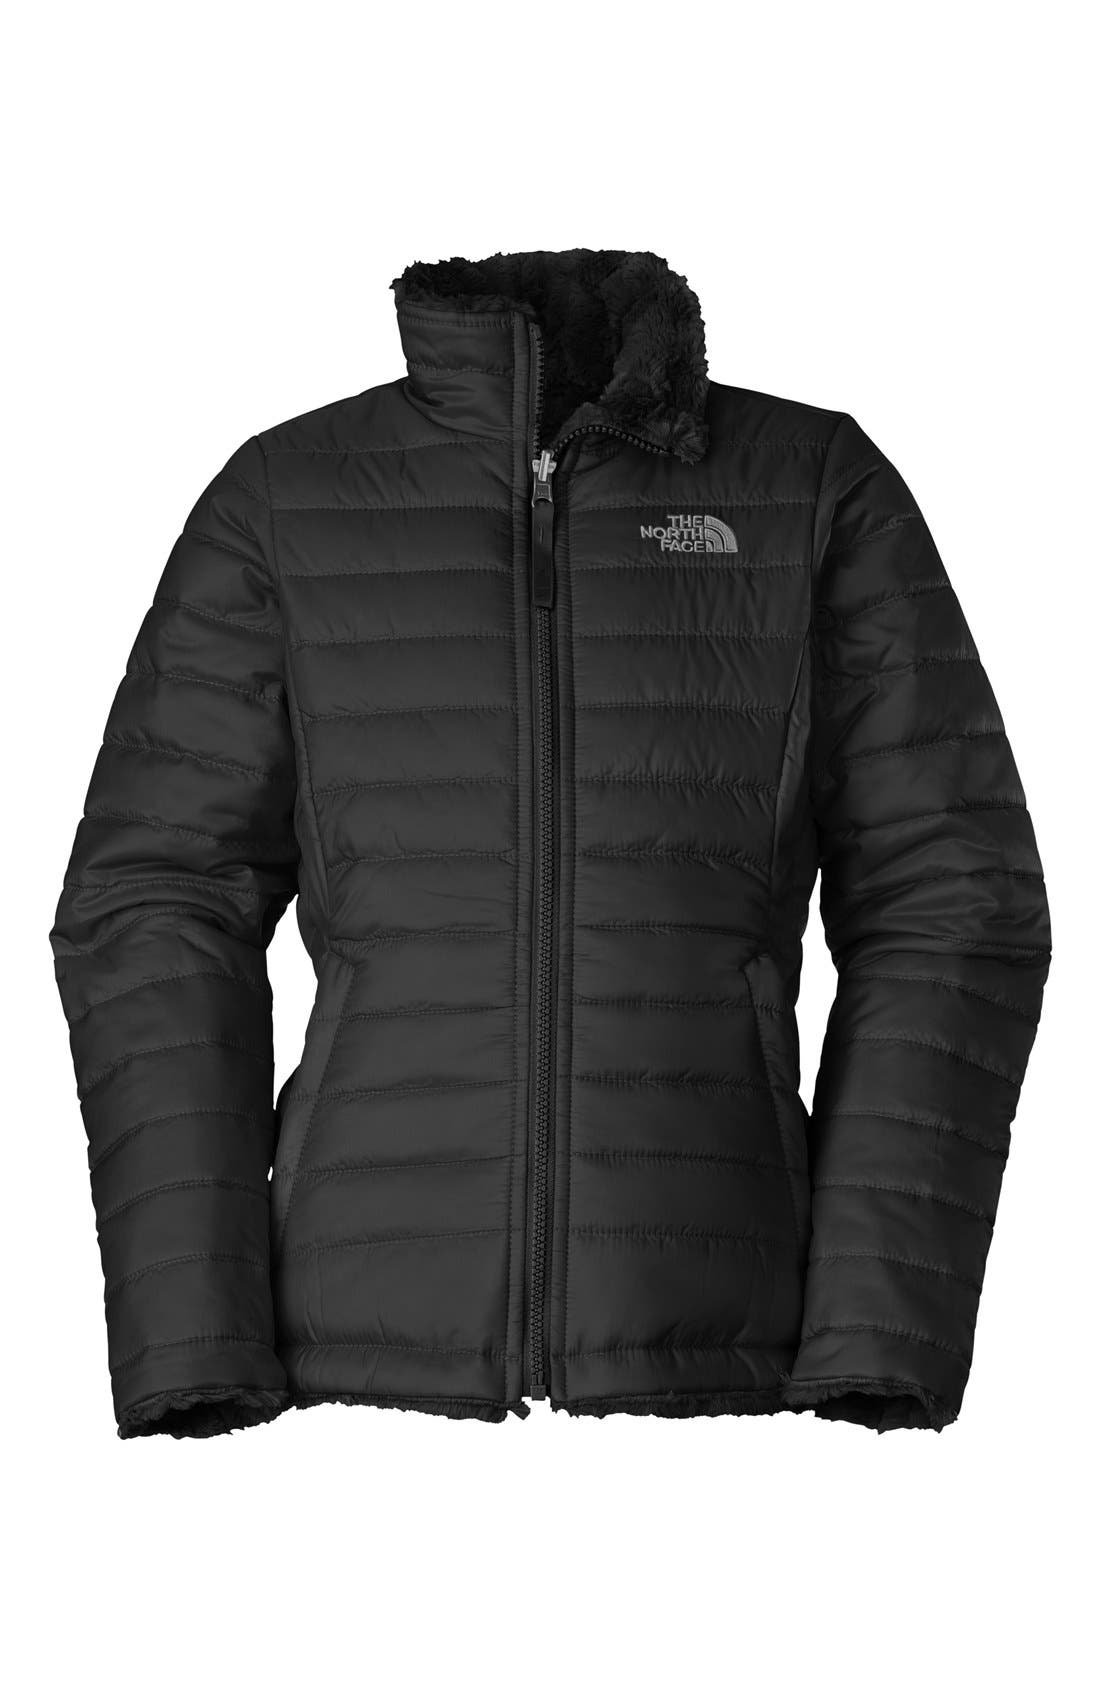 The North Face 'Mossbud Swirl' Reversible Water Repellent Jacket (Little Girls & Big Girls) (Regular Retail Price: $110.00)